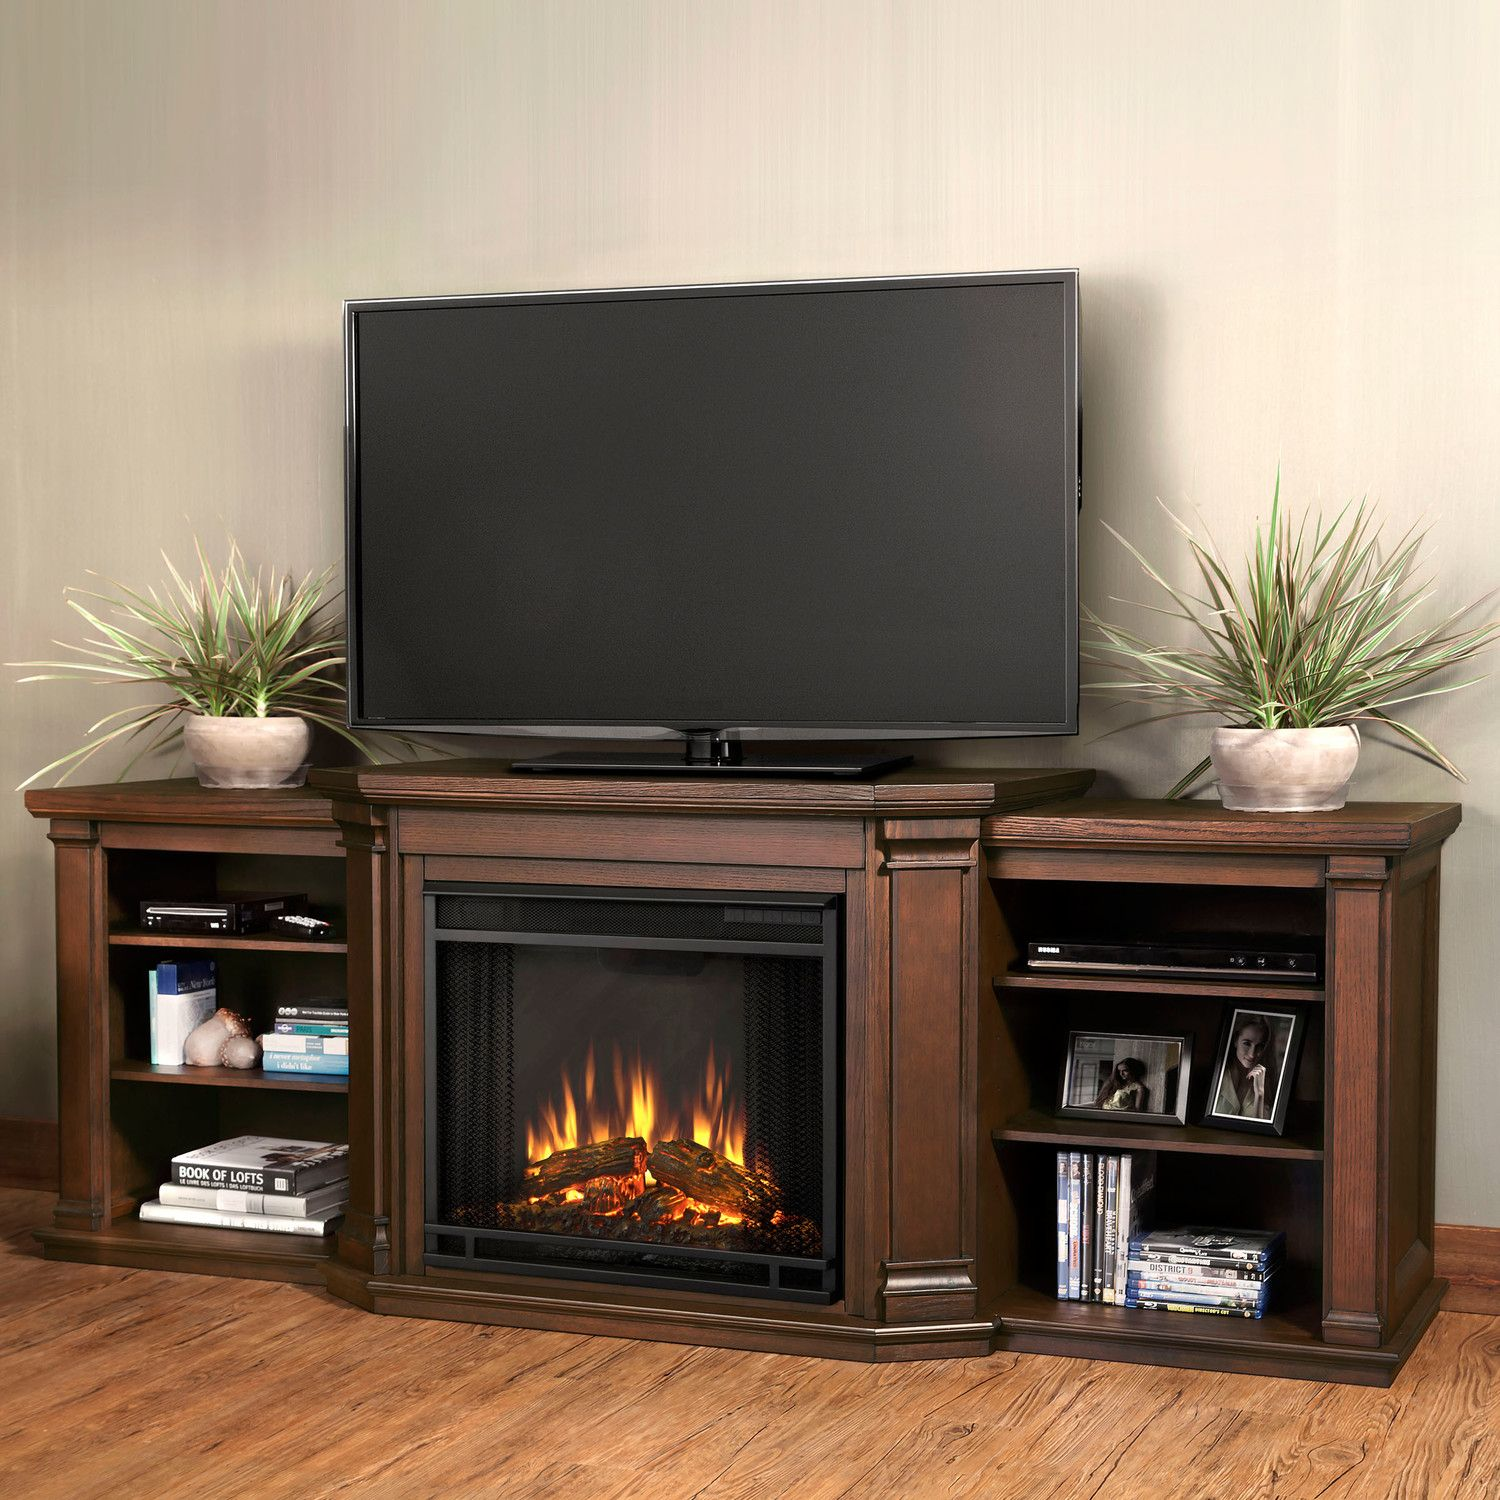 blvd electric fetching pretty mantle under harper tv saddle in corner lcd on infrared convertible with graceful white fireplace hawkins oak stand wooden storage